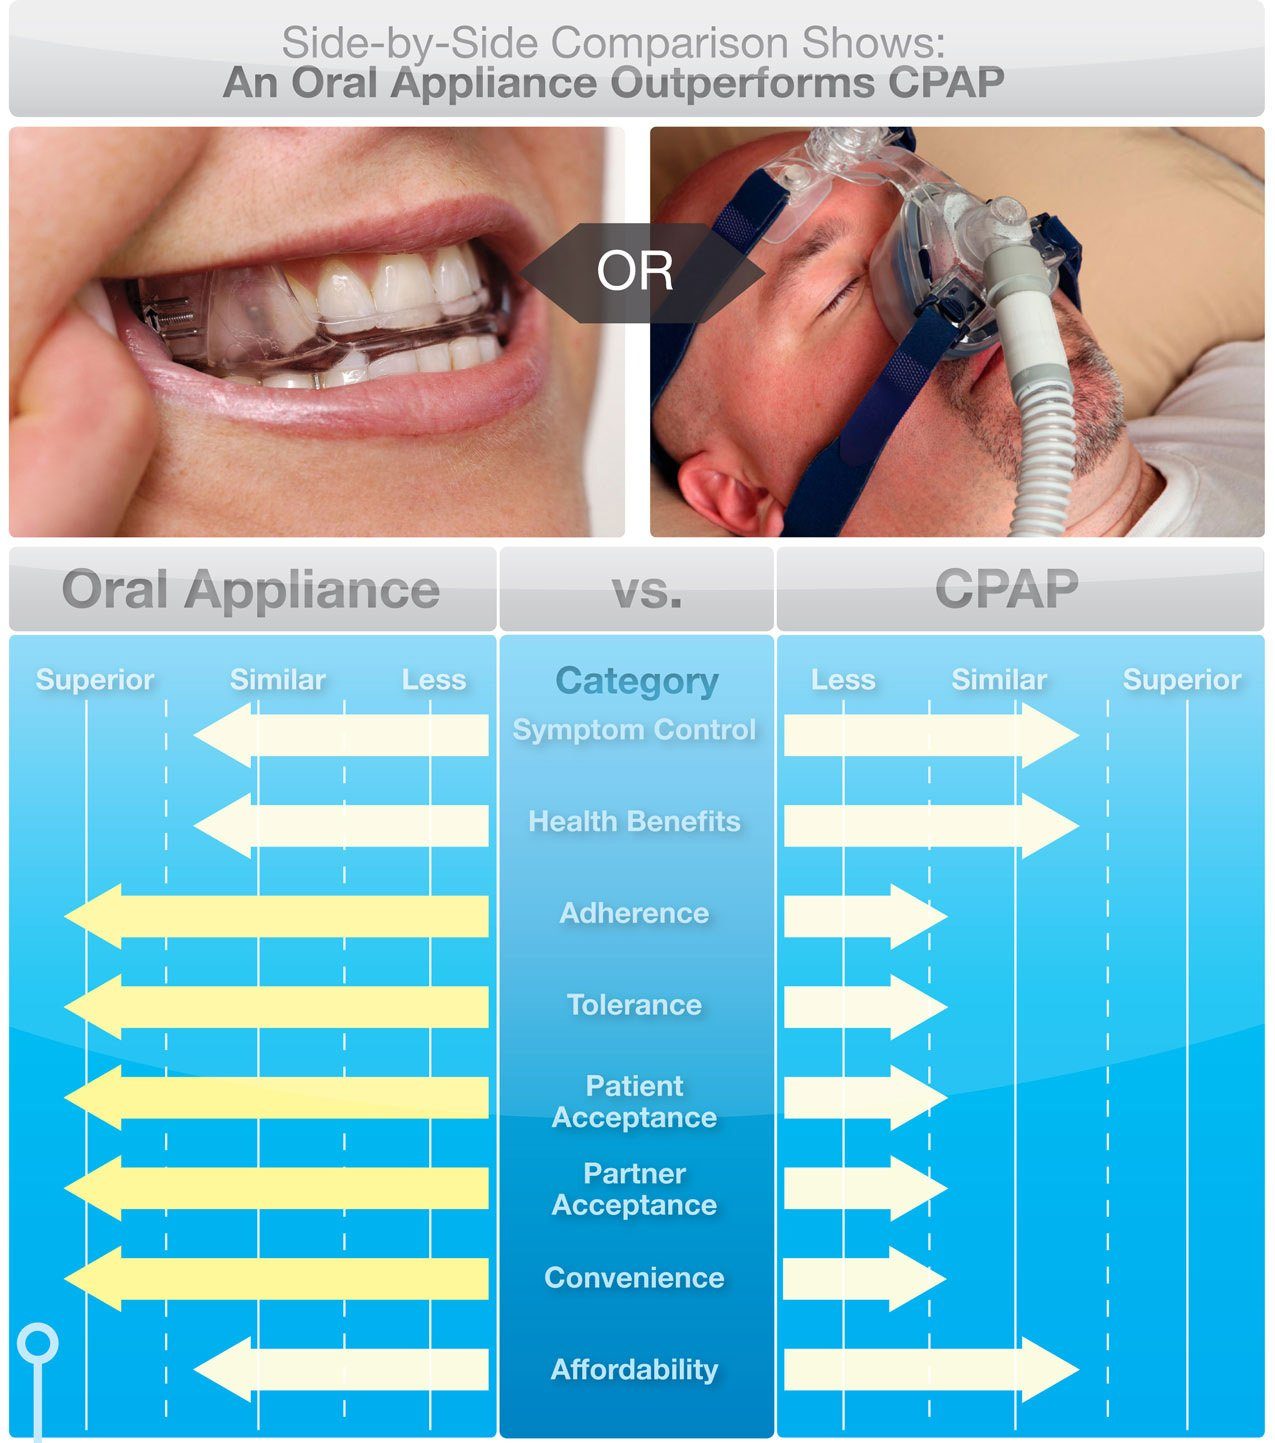 CPAP or ORAL APPLIANCE